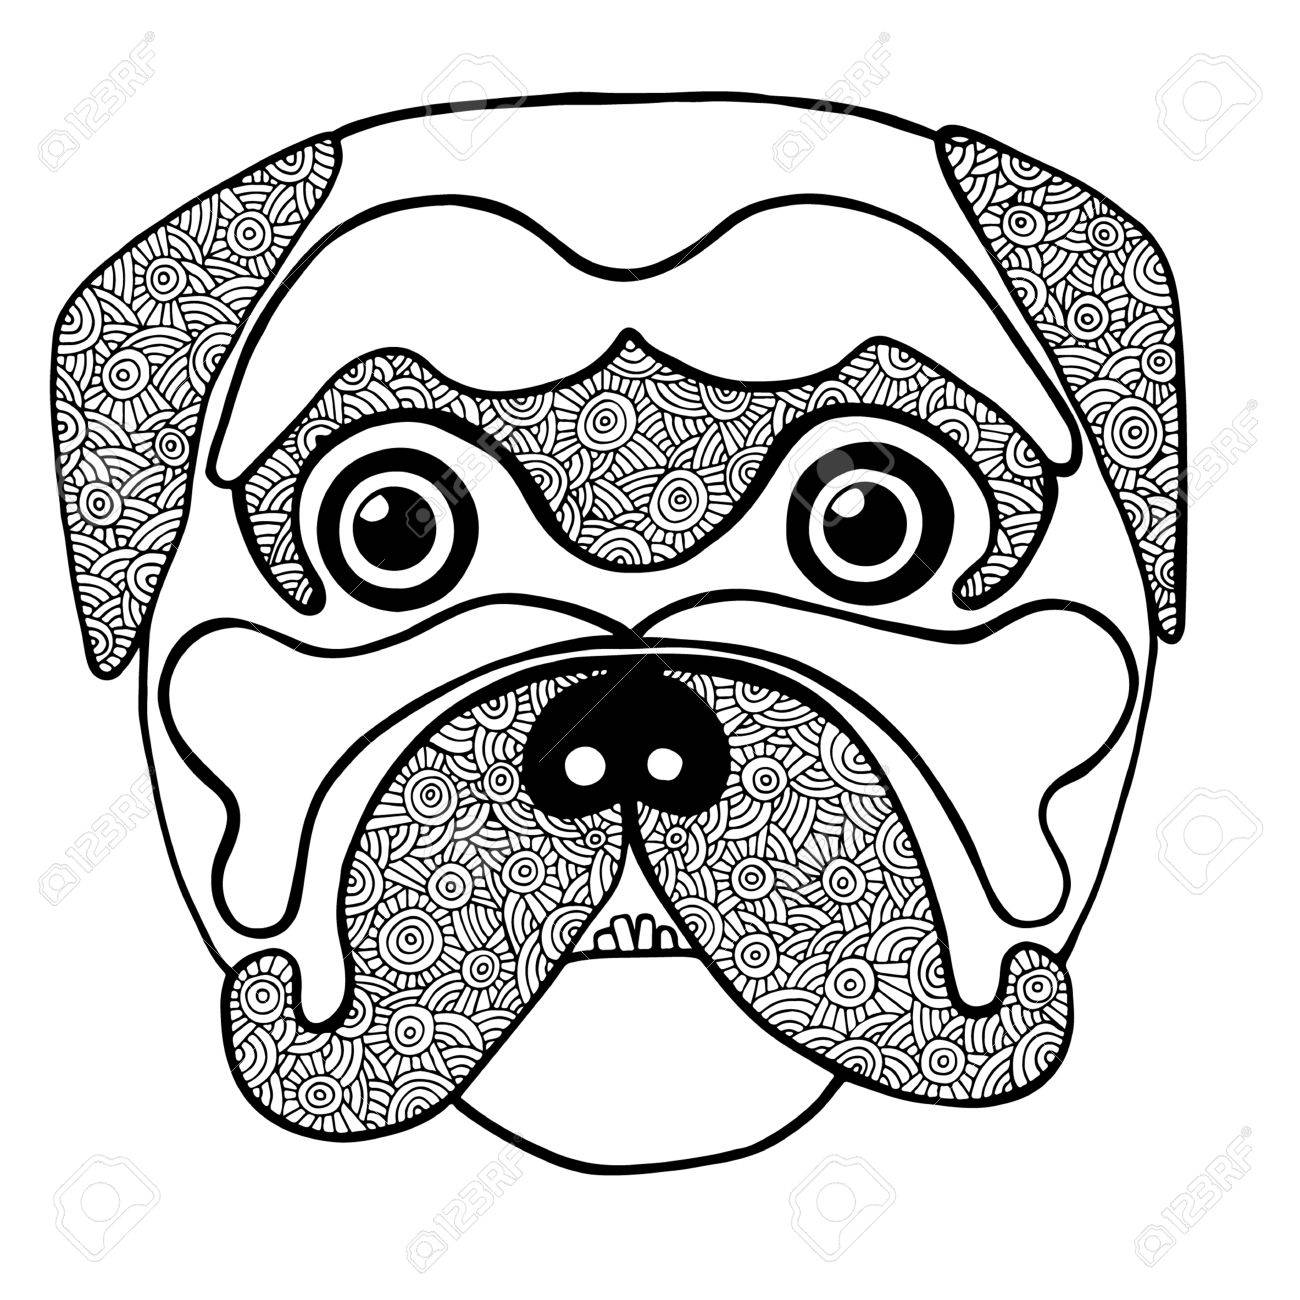 Black Line Cute Dog Head Hand Drawn Sketch For Adult And Children Antistress Coloring Page